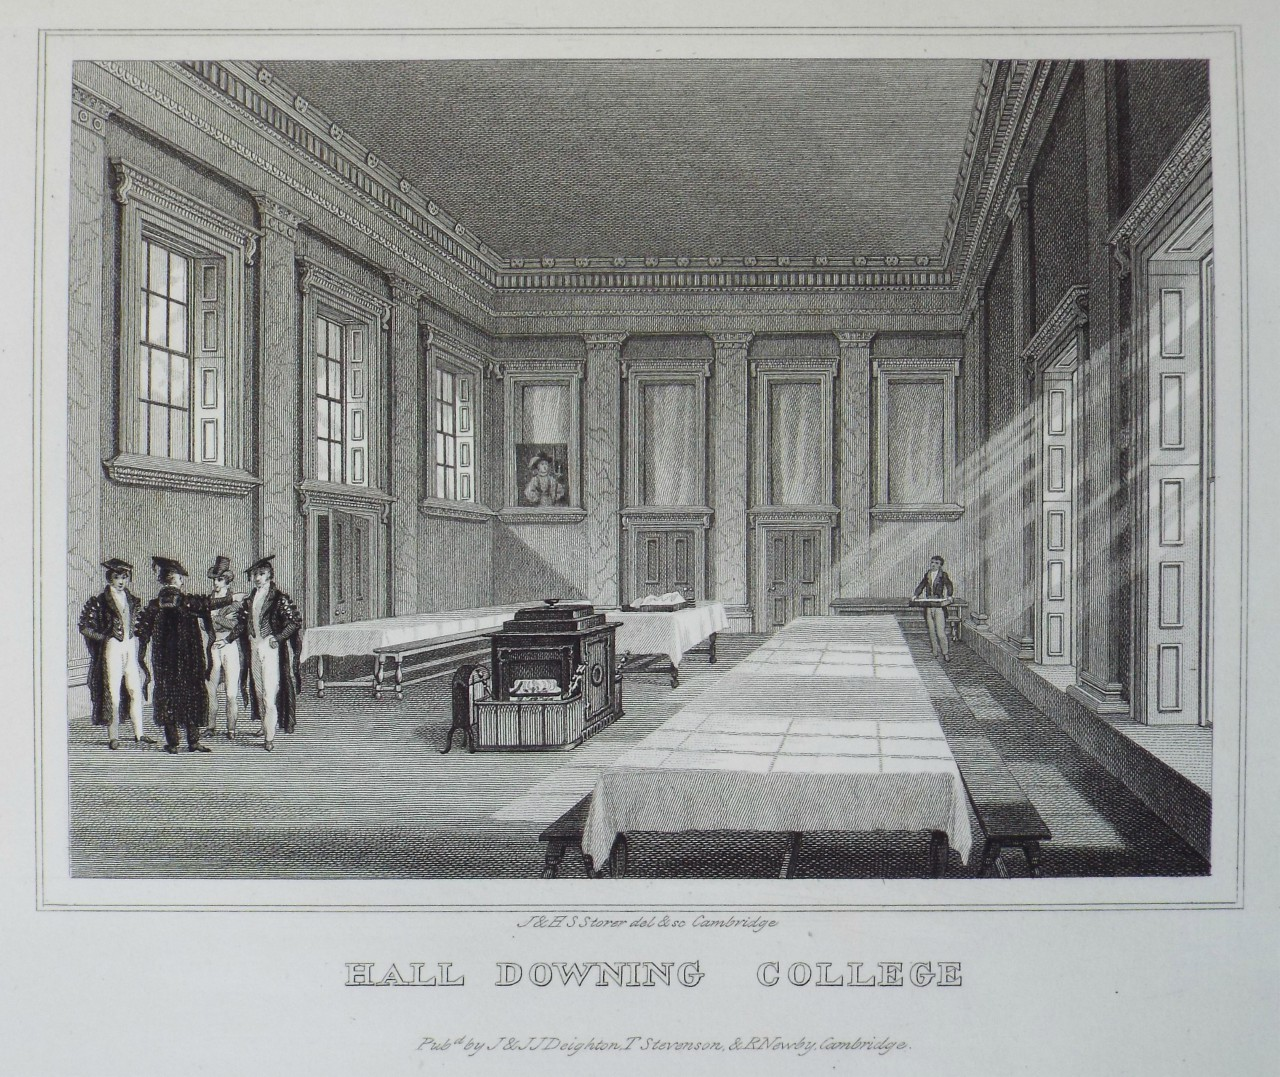 Print - Hall Downing College - Storer